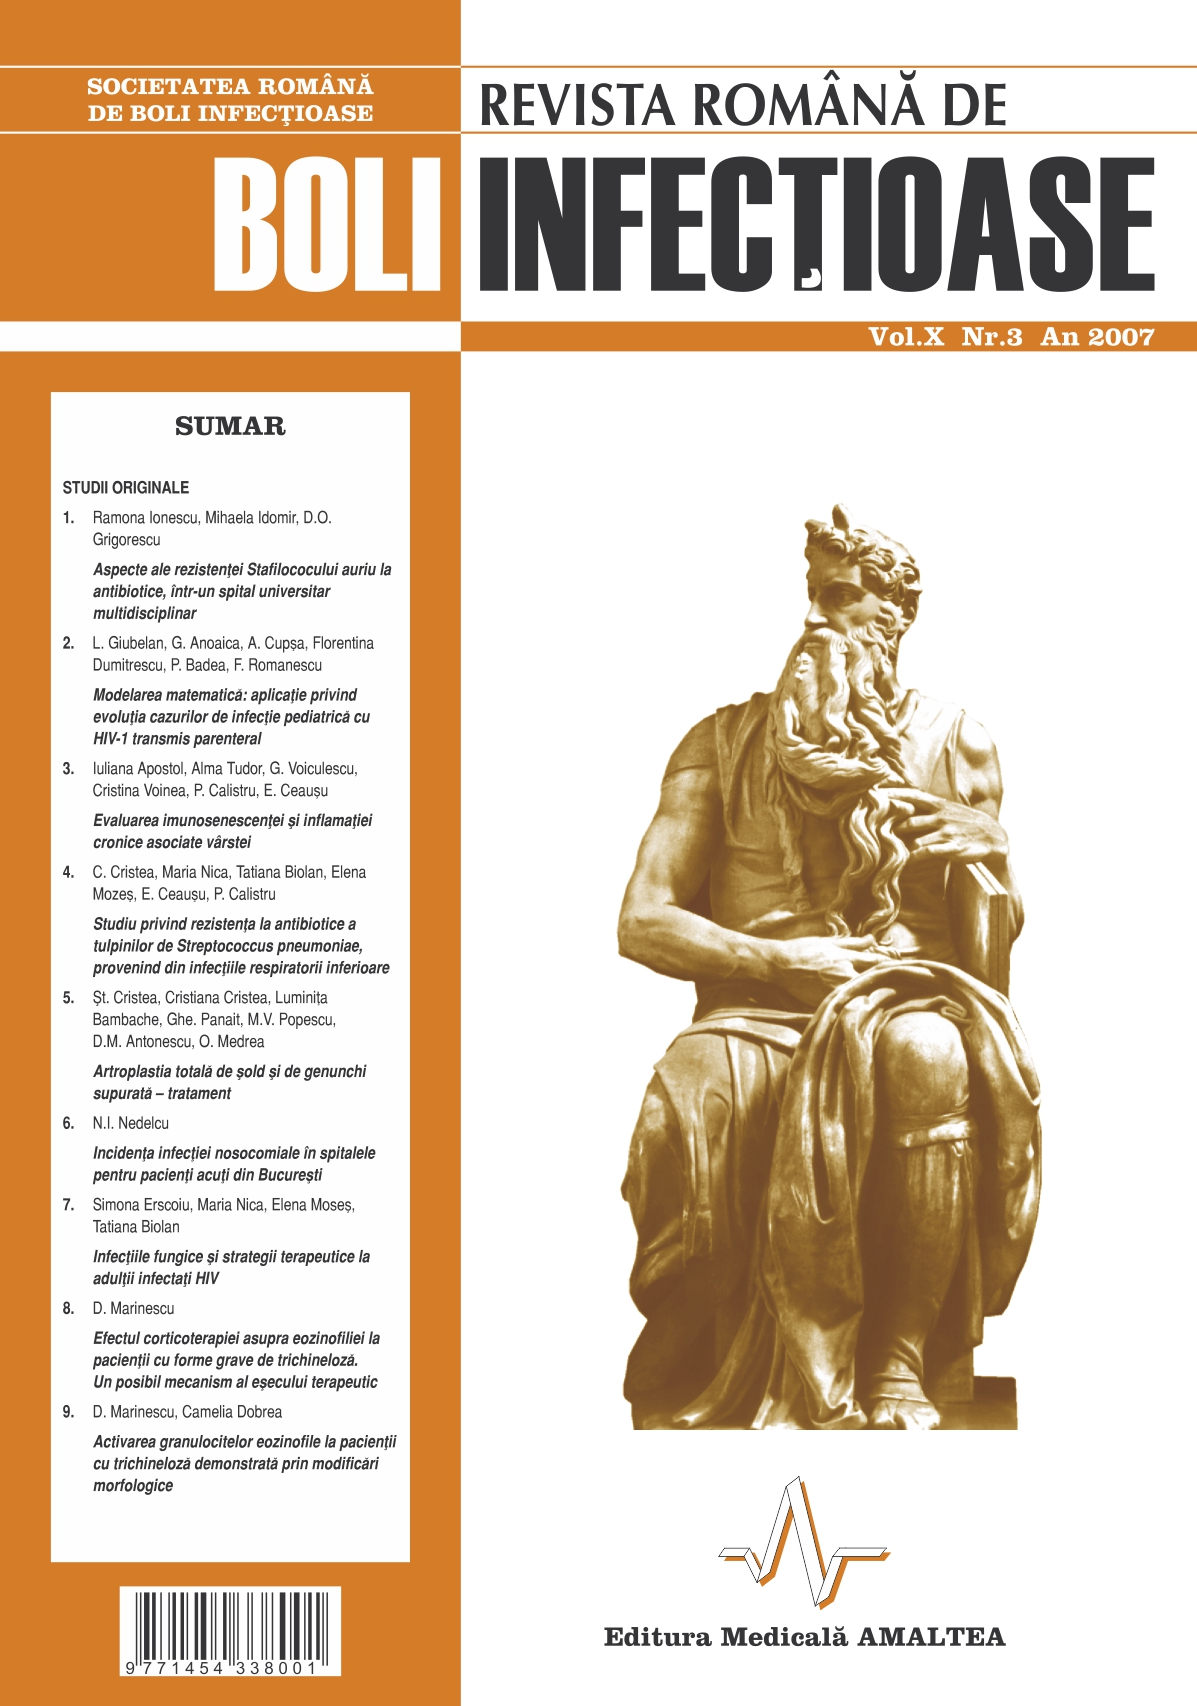 Revista Romana de Boli Infectioase | Vol. X, No. 3, 2007